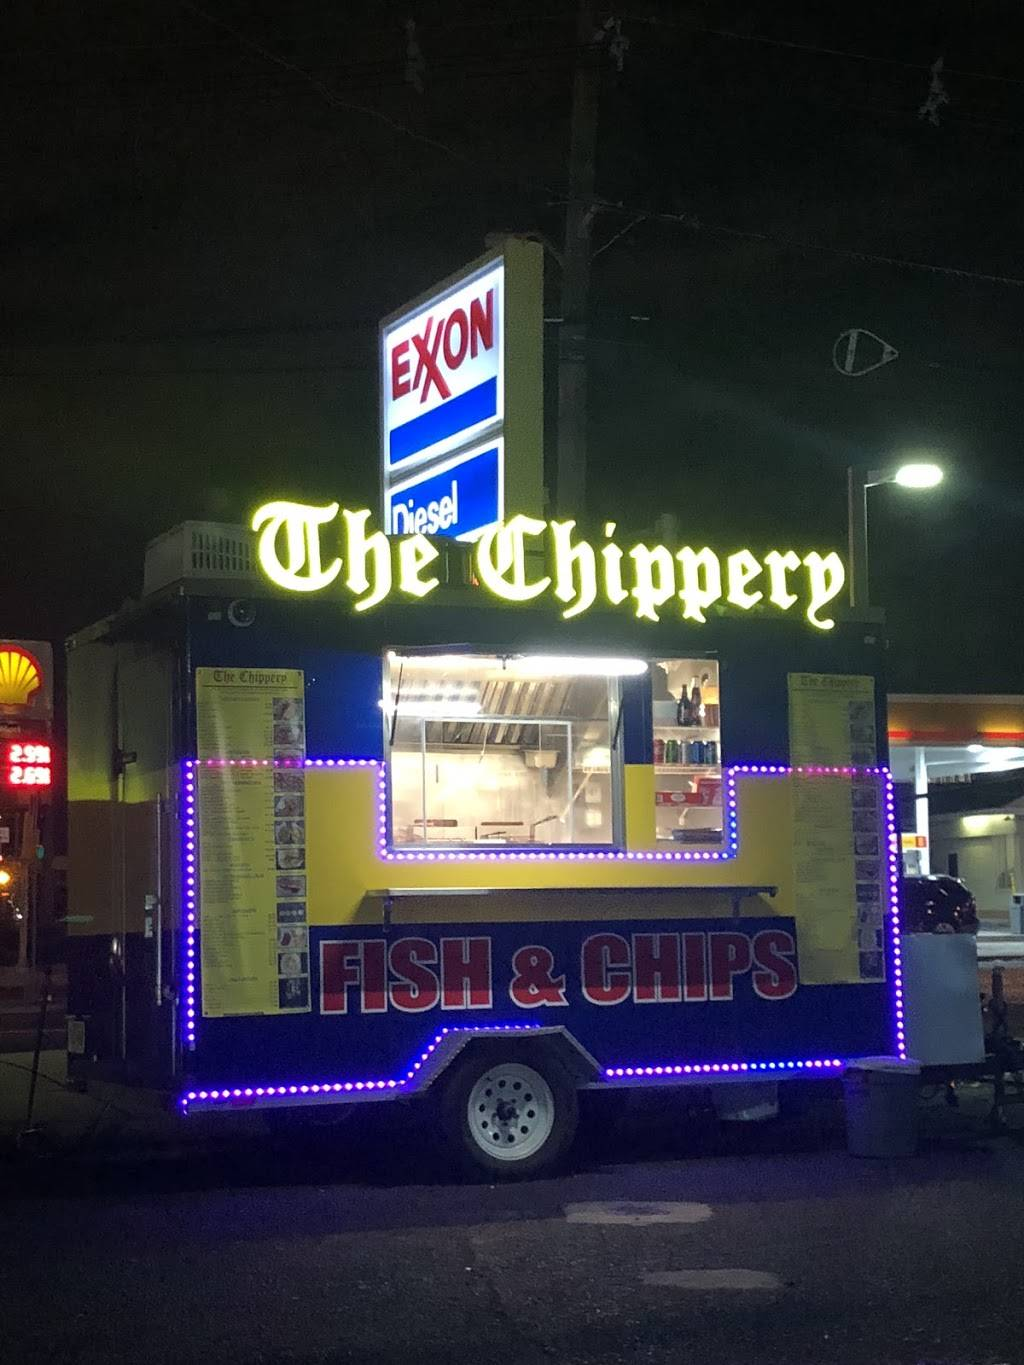 The Chippery   restaurant   983 Communipaw Ave, Jersey City, NJ 07304, USA   2018934424 OR +1 201-893-4424